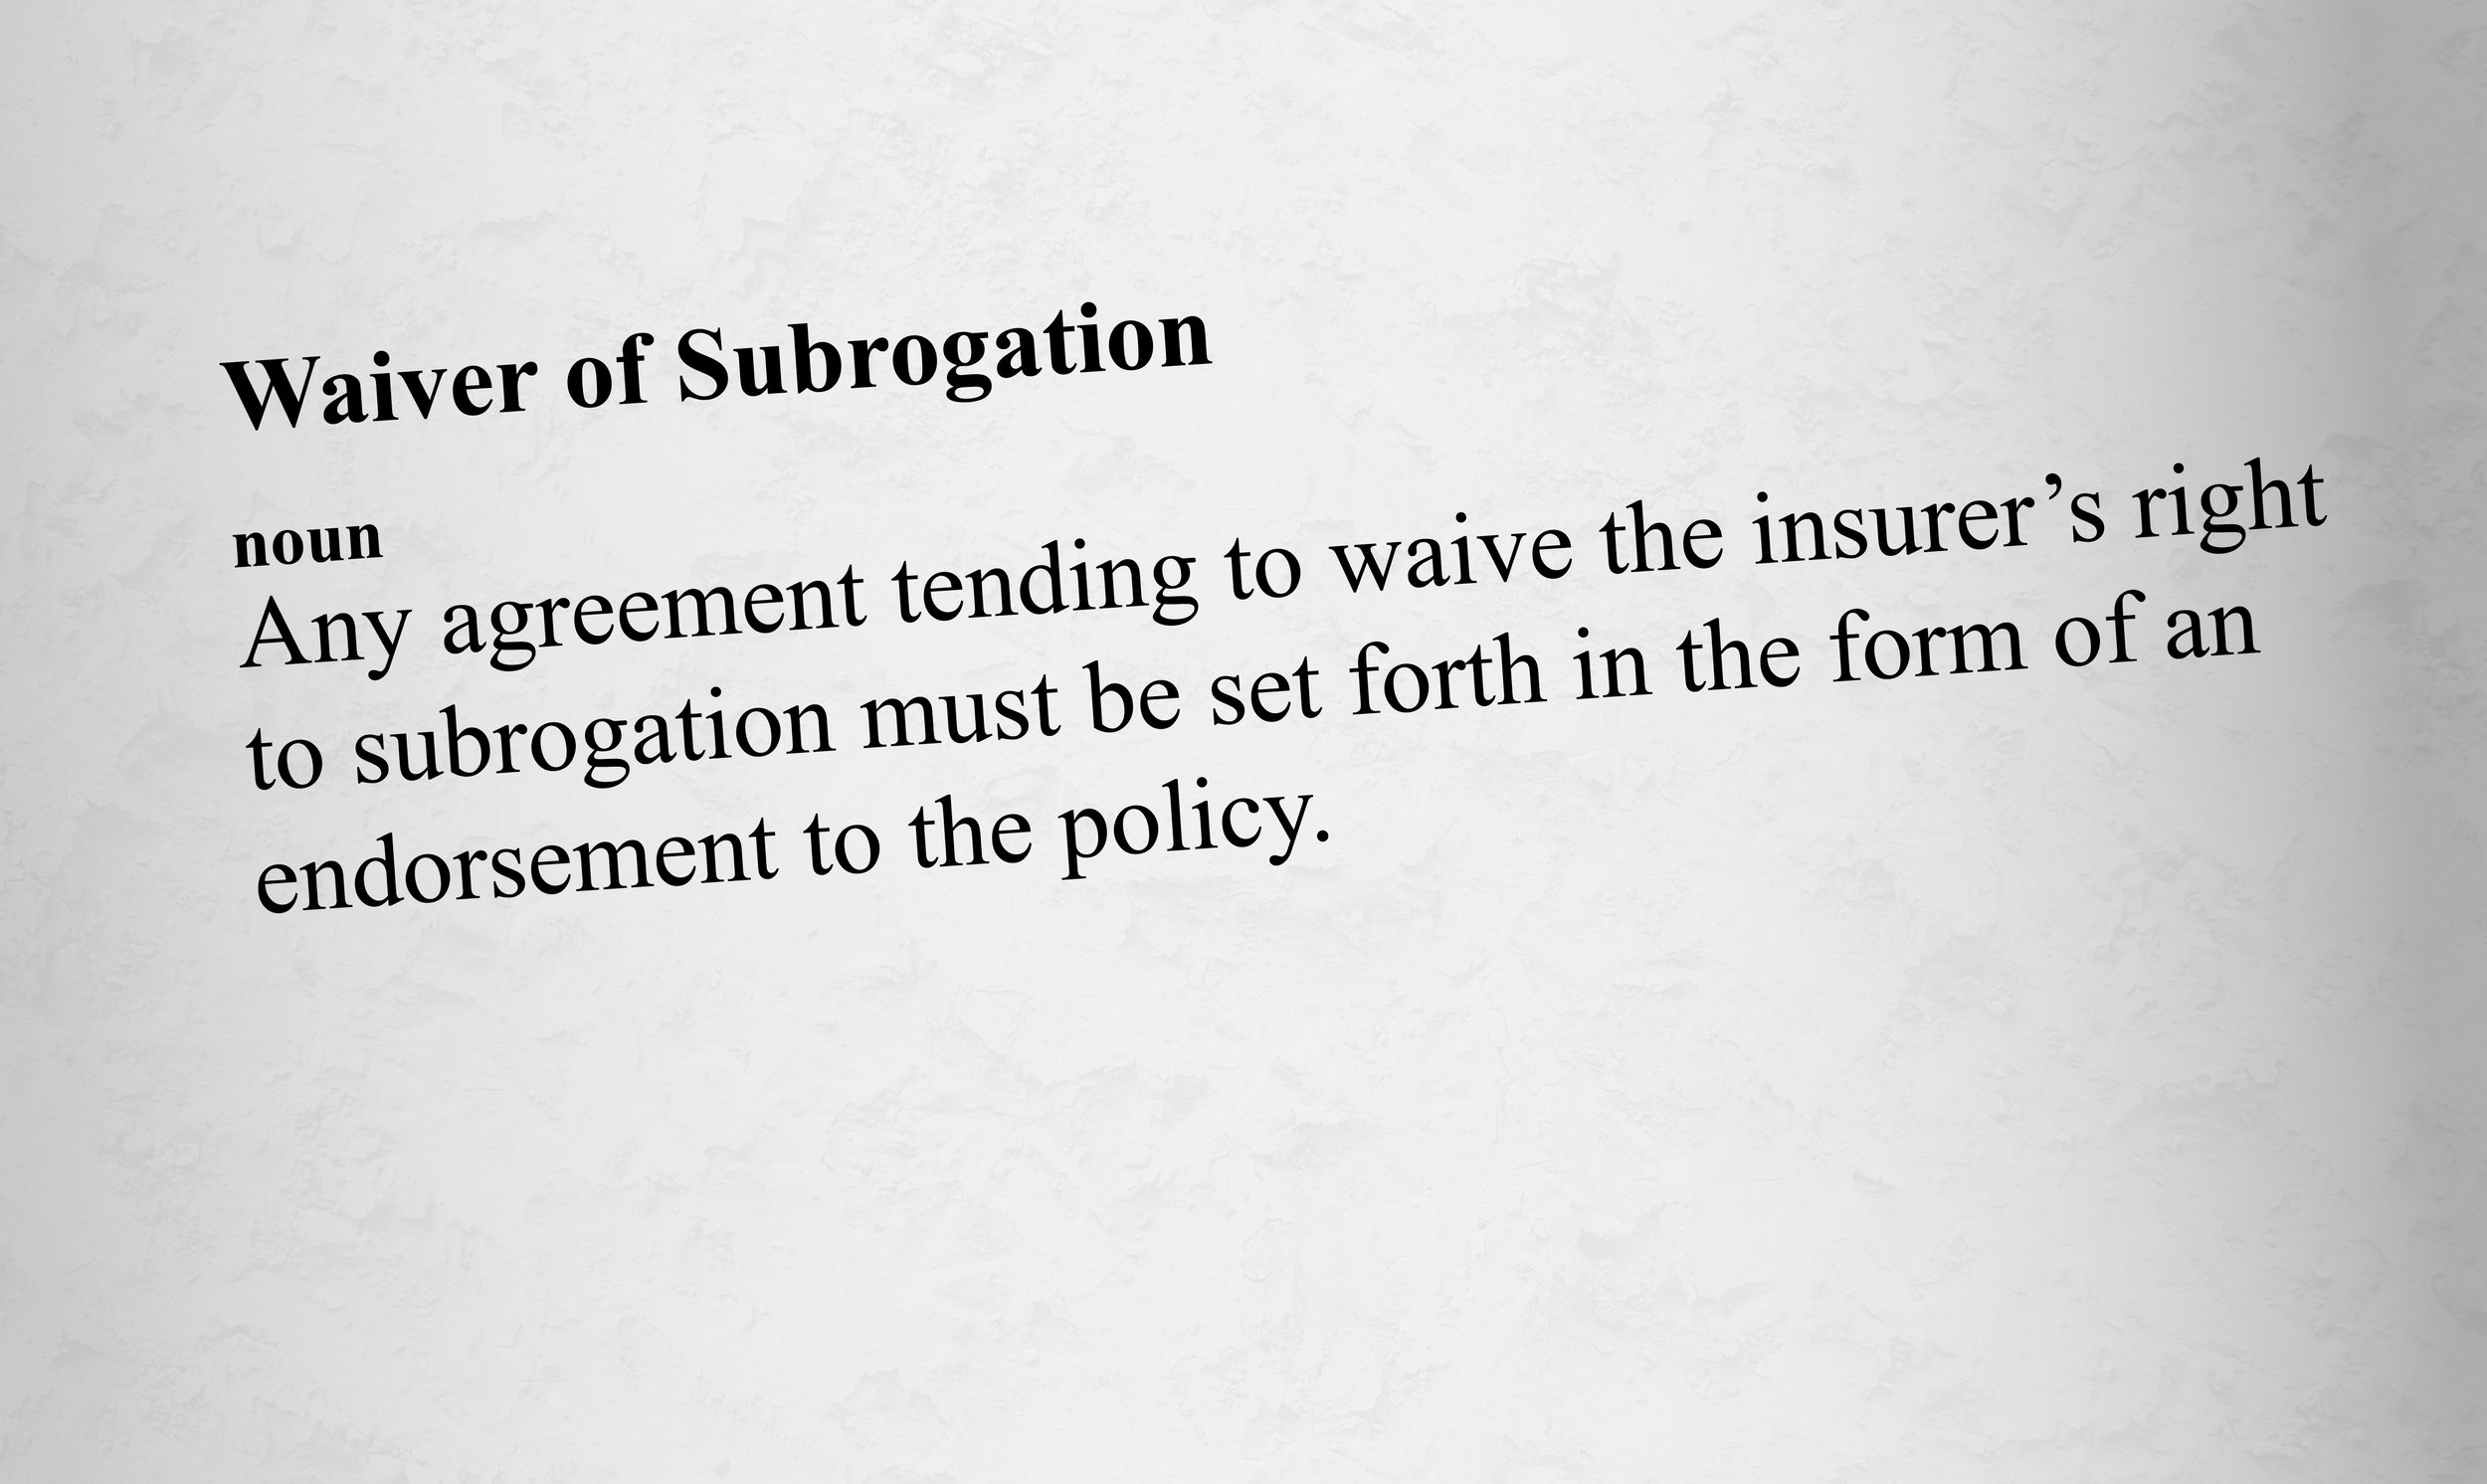 Waiver of Subrogration dictionary definition page.